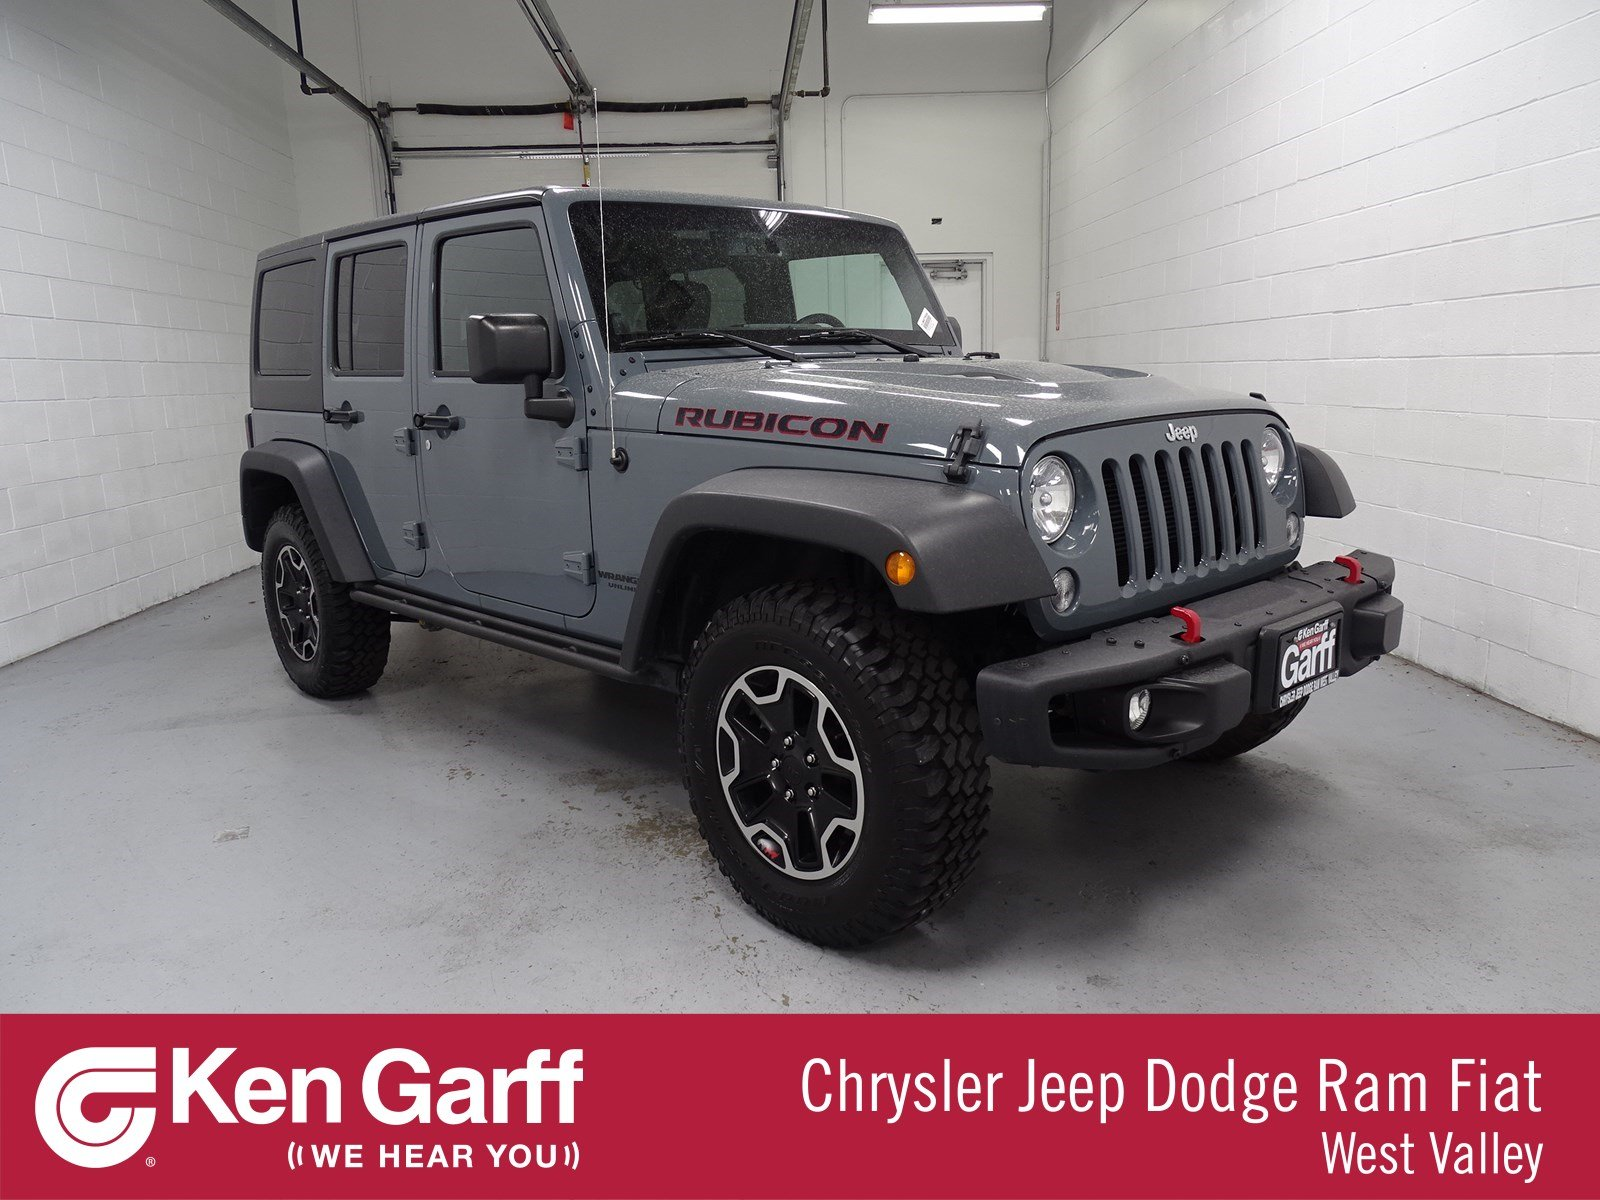 Certified Pre-Owned 2014 Jeep Wrangler Unlimited Rubicon X ...